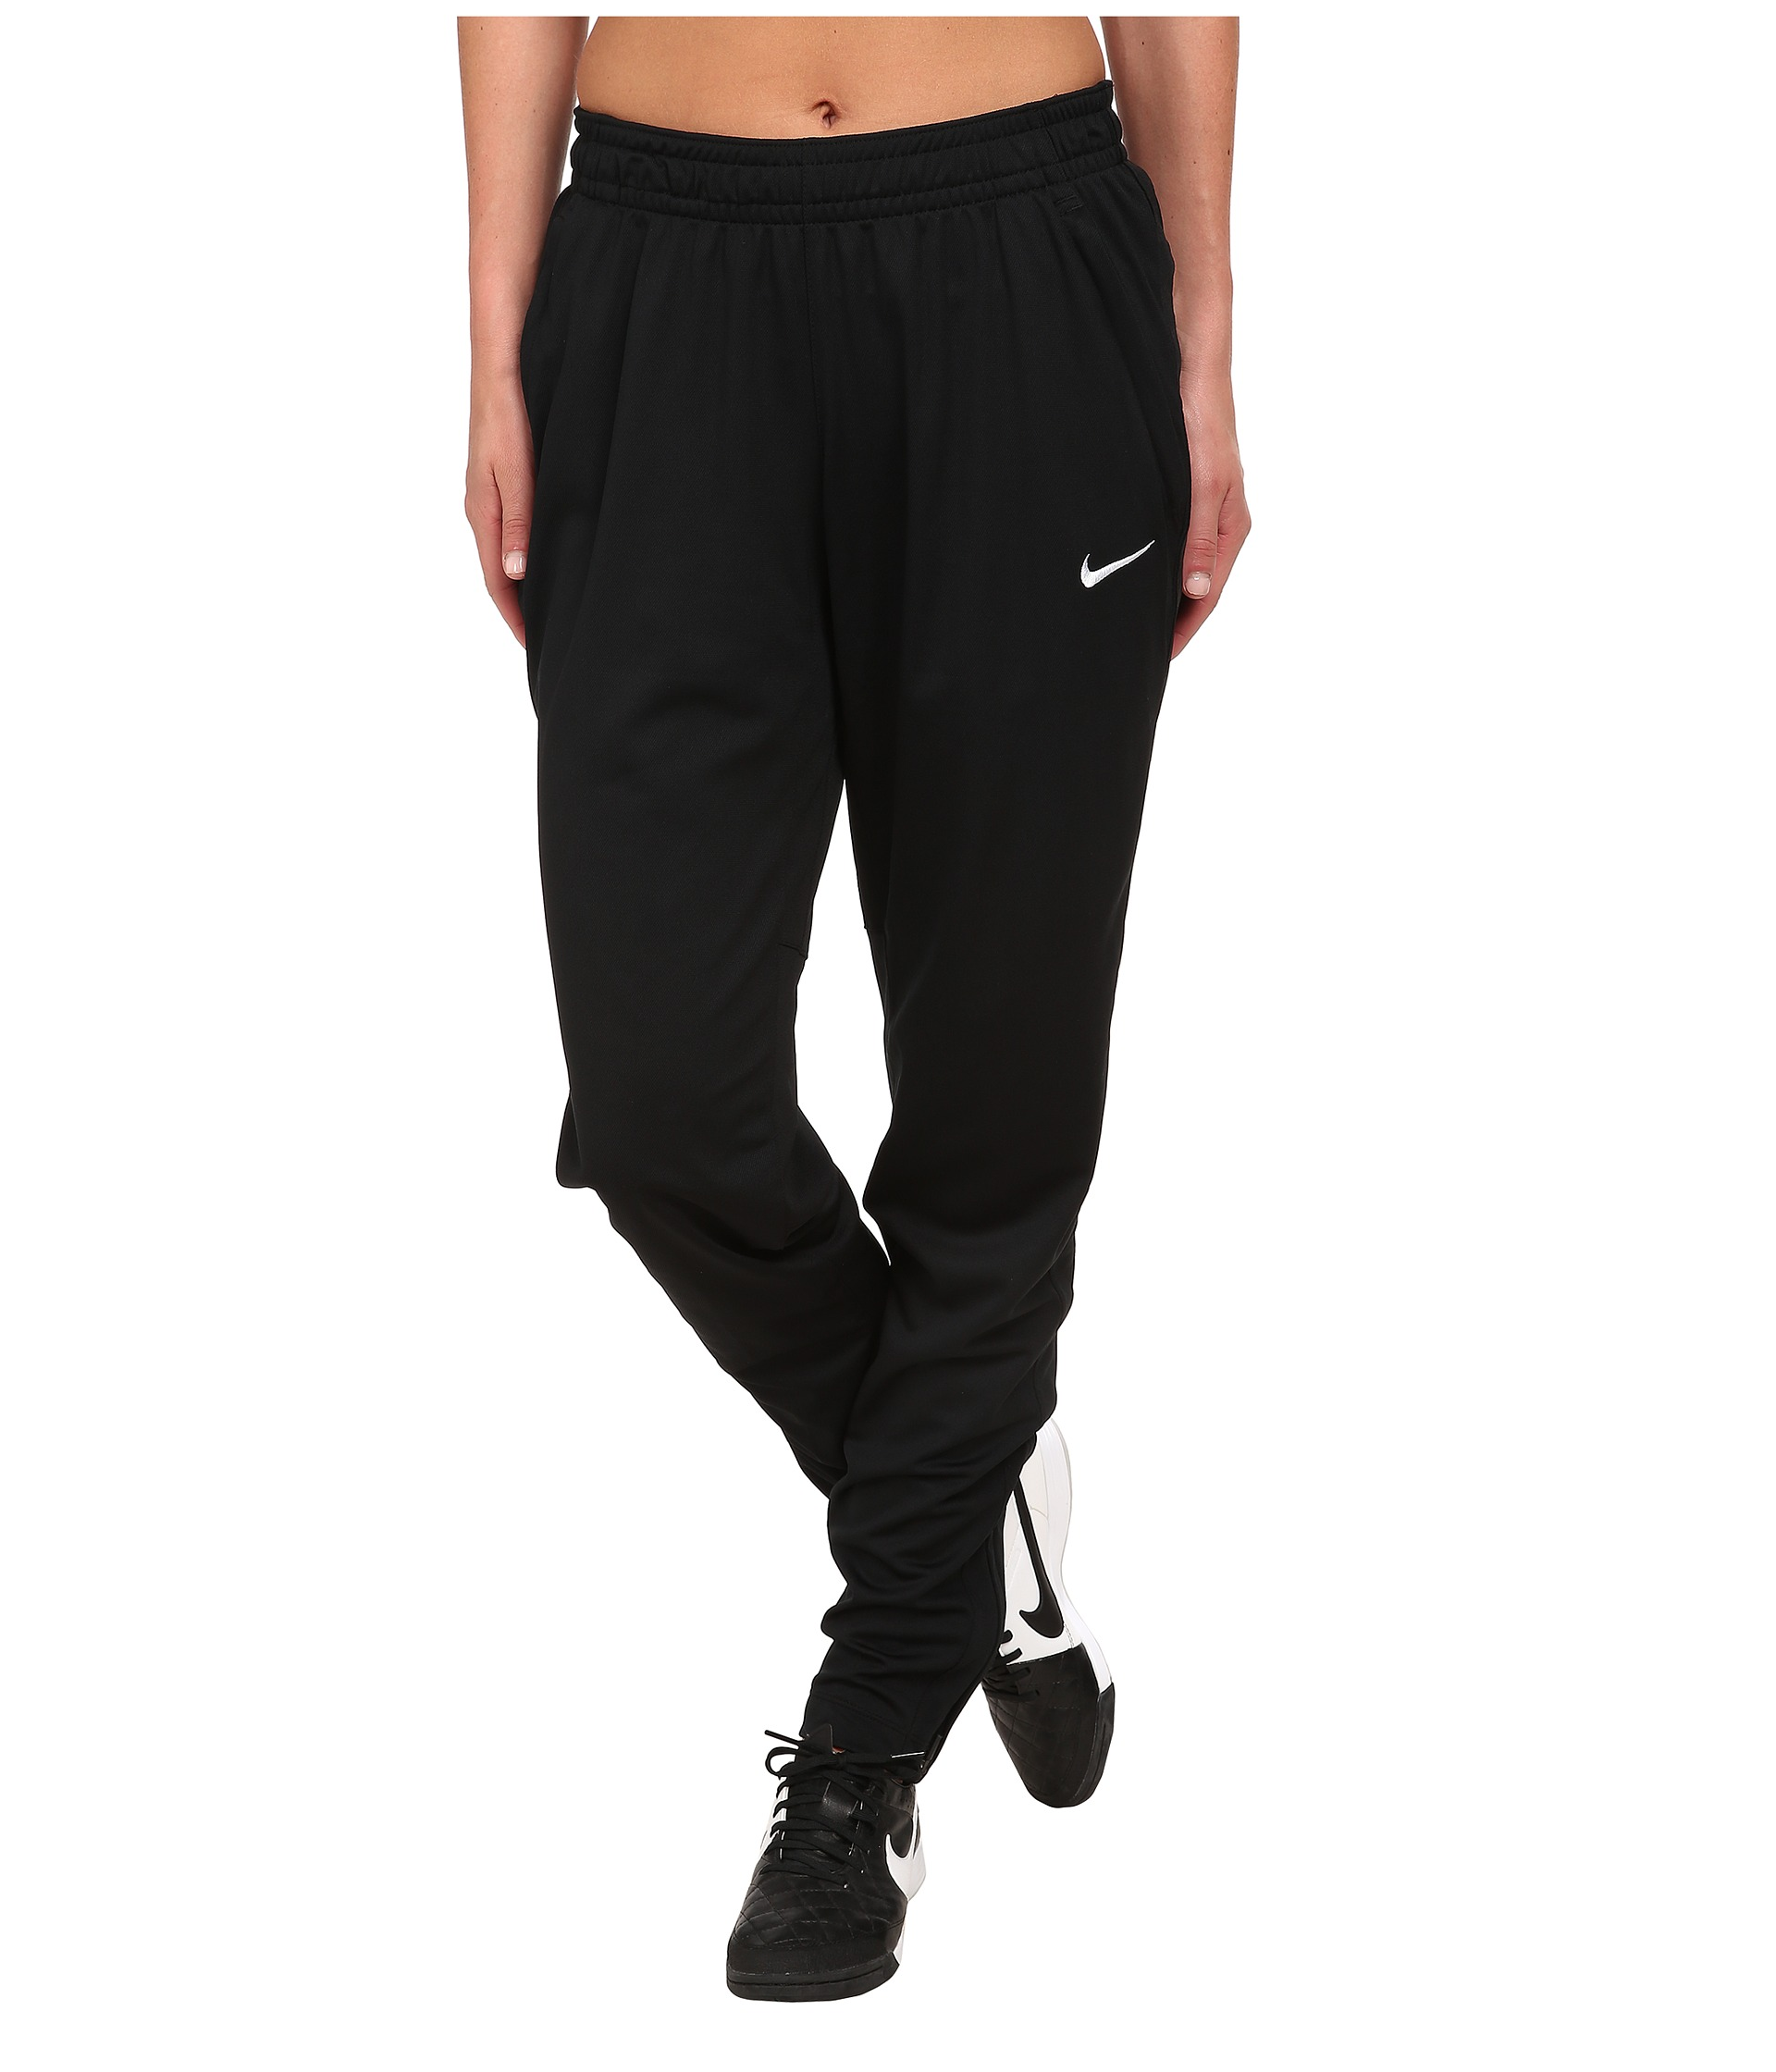 Nike Academy Knit Soccer Pant at Zappos.com